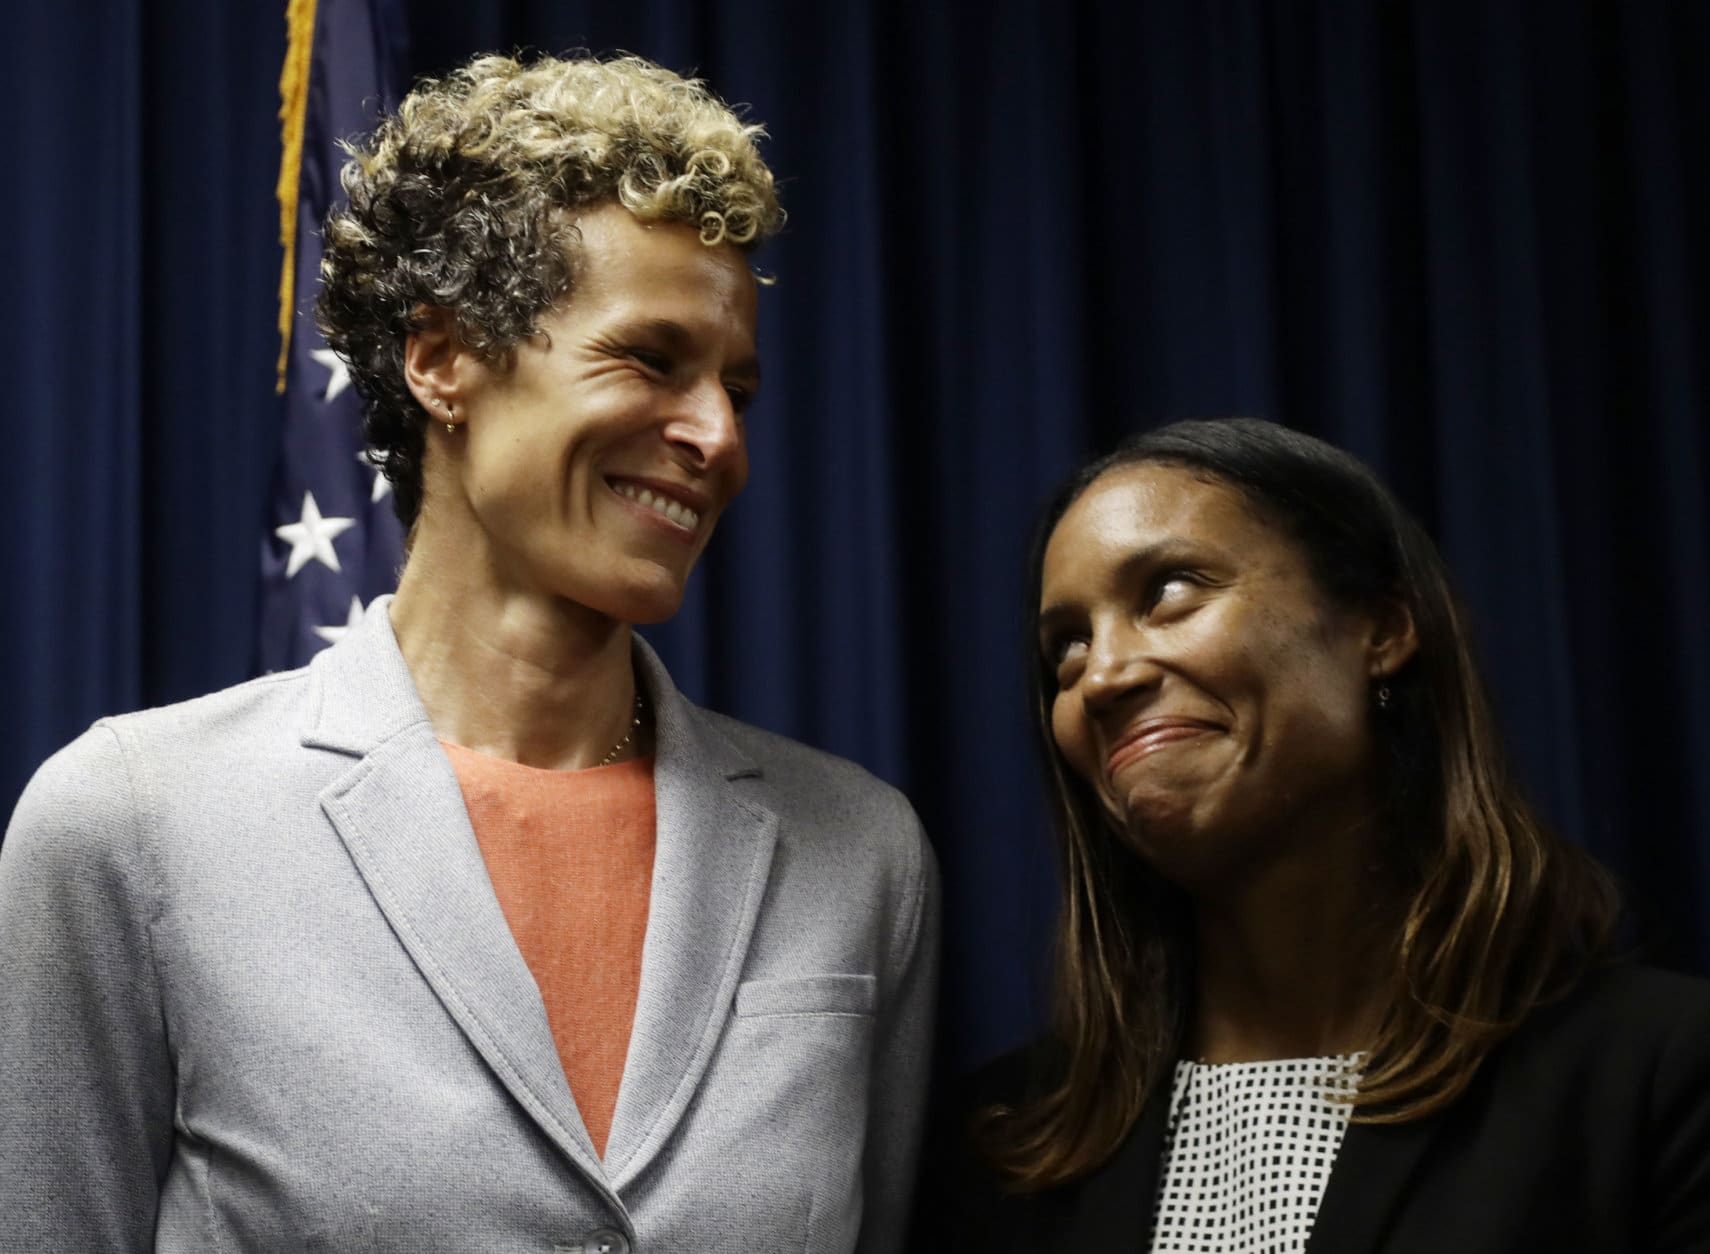 Accuser Andrea Constand, left, reacts at a news conference with prosecutor Kristen Feden after Bill Cosby was sentenced to three to 10 years for sexual assault on Sept. 25, 2018, in Norristown, Pa. (AP Photo/Matt Slocum)